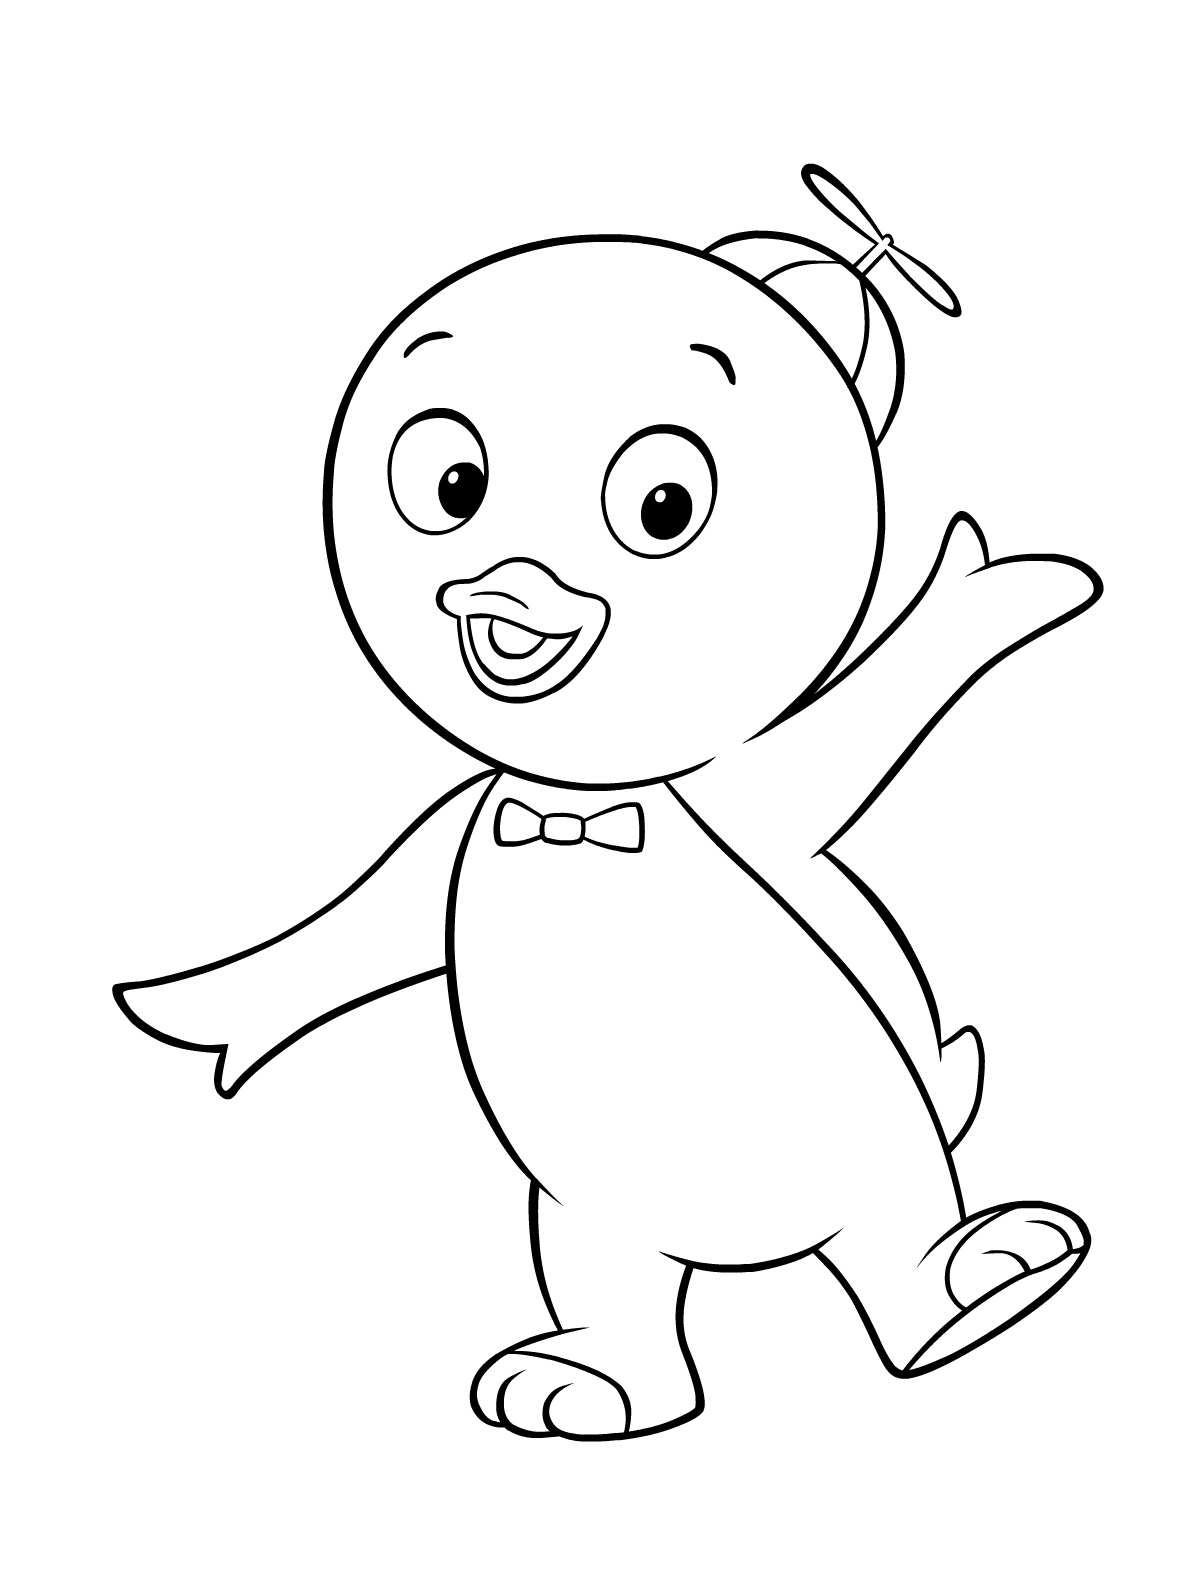 Free Printable Backyardigans Coloring Pages For Kids Printing Color Pages